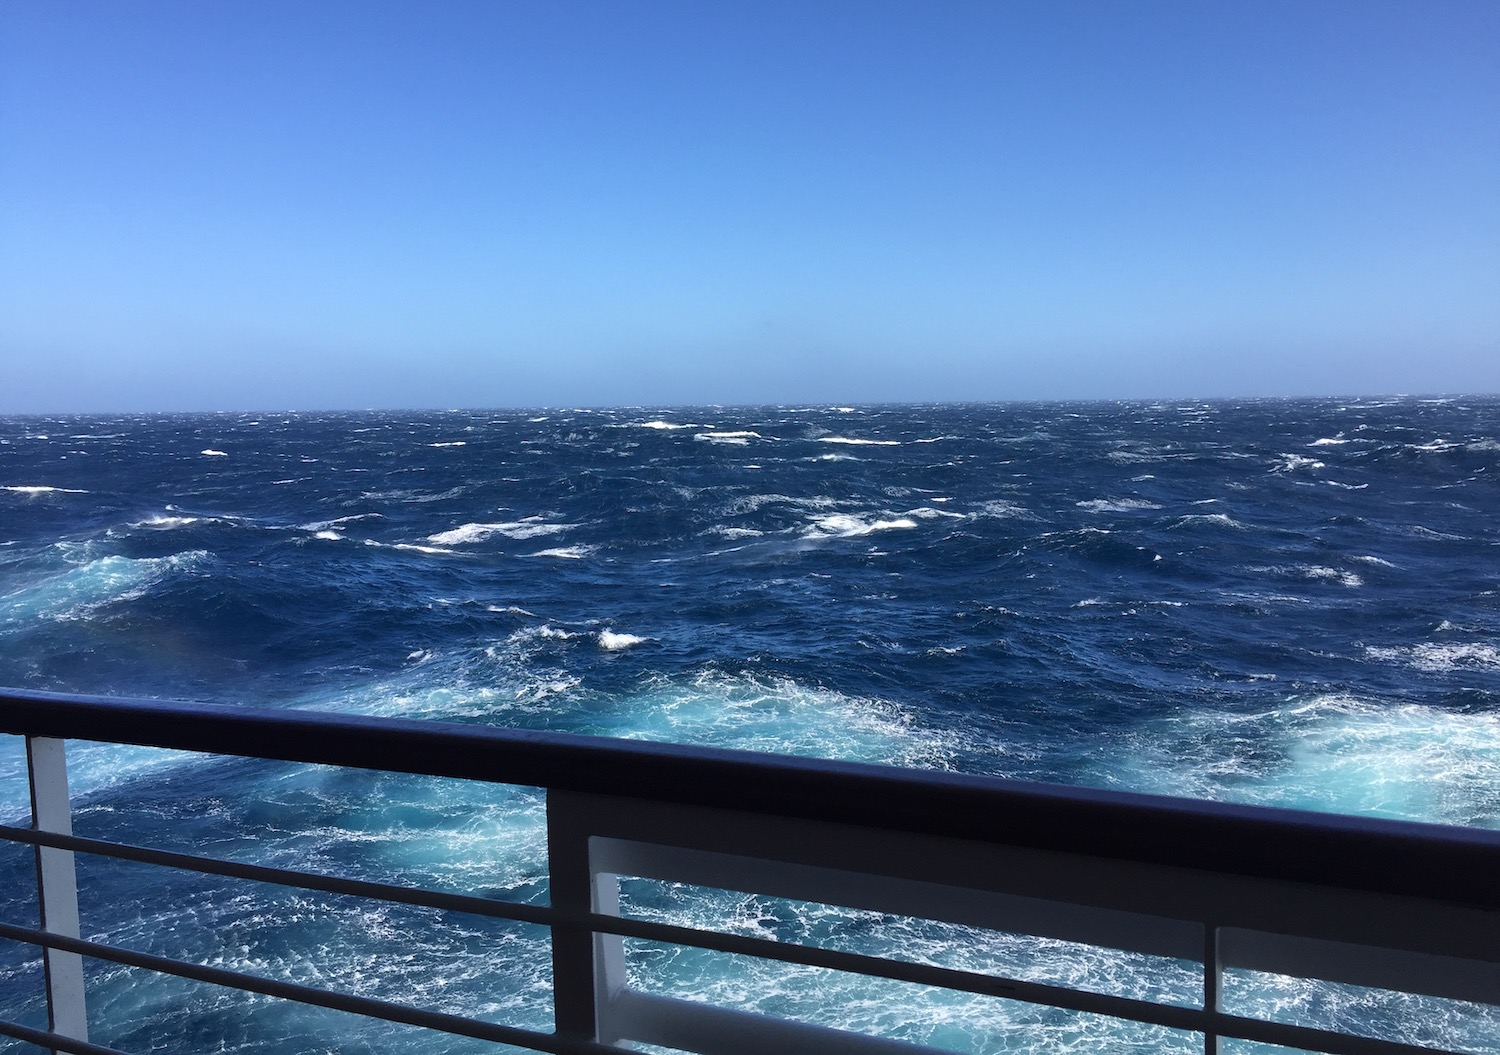 Cruising through Bay of Biscay / North Atlantic Ocean in March on an Iberian Cruise